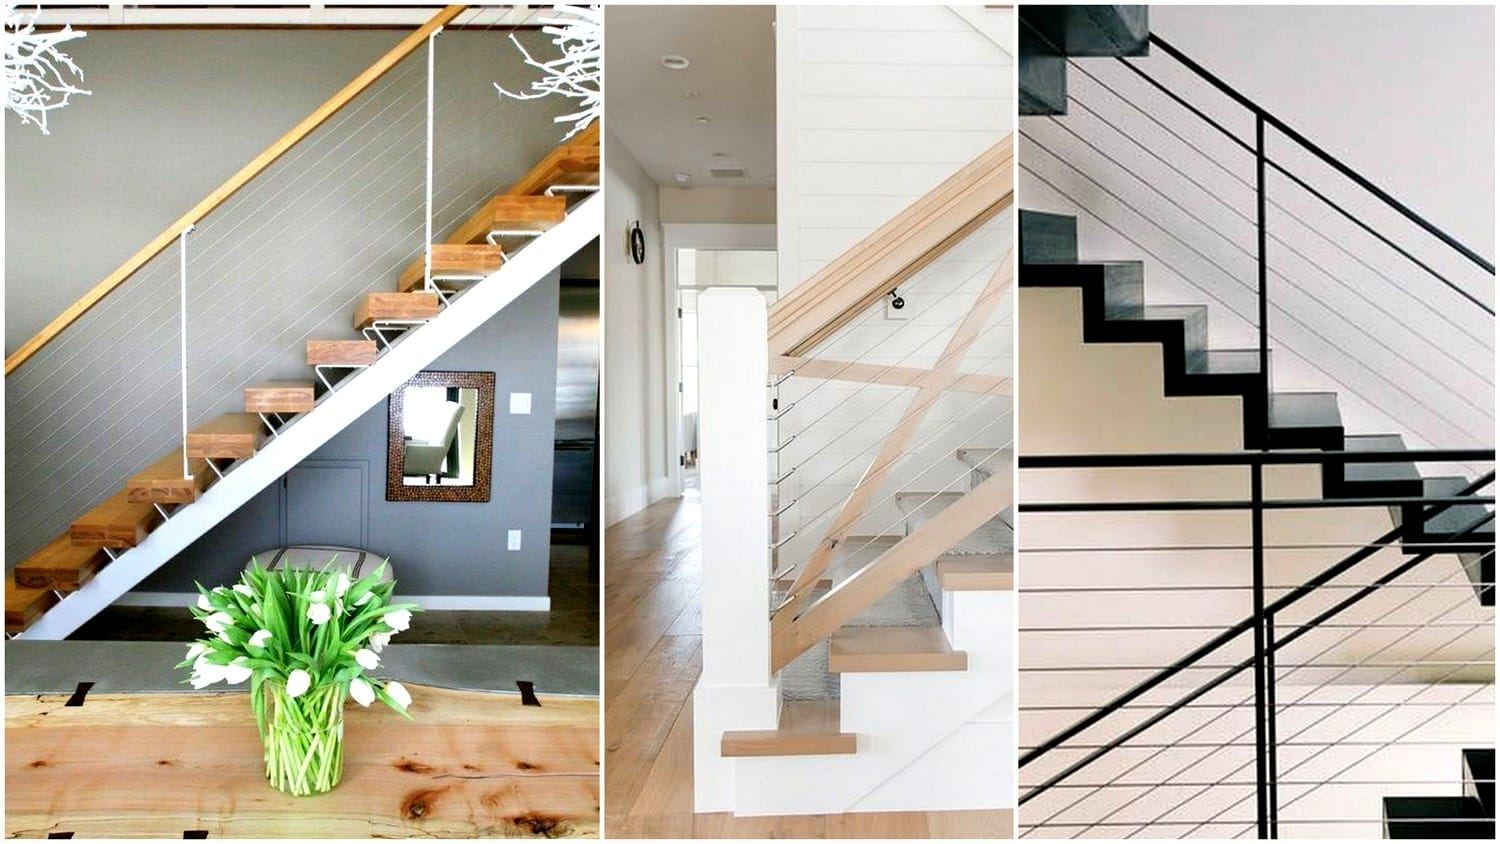 What You Need To Know And How To Use Cable Railings In Your   Diy Glass Stair Railing   Cable Railing   Modern Stair Parts   Floating Staircase   Railing Ideas   Wood